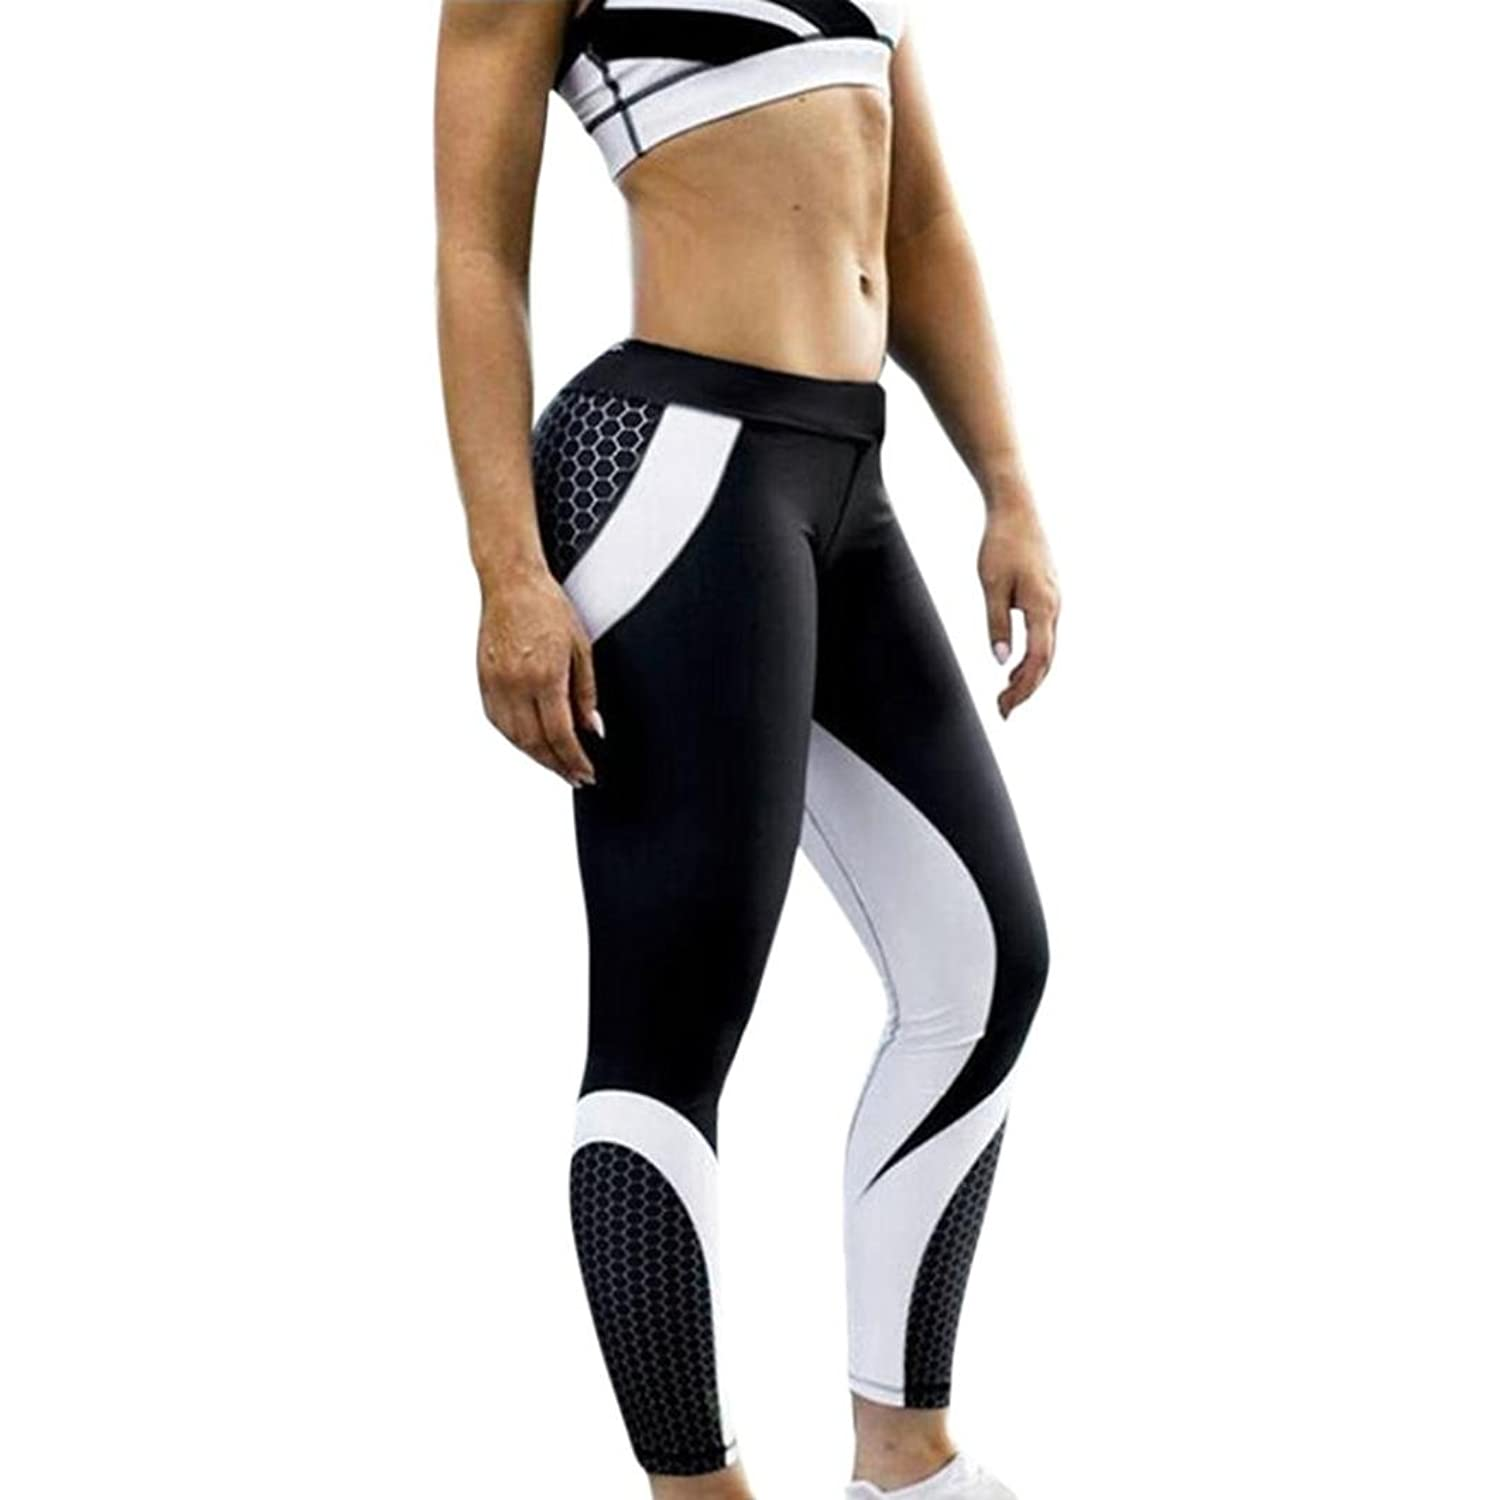 ❤Damen Leggings Push Up Hohe Taille Sport Yoga Gym Fitness Jogginghose Leggins